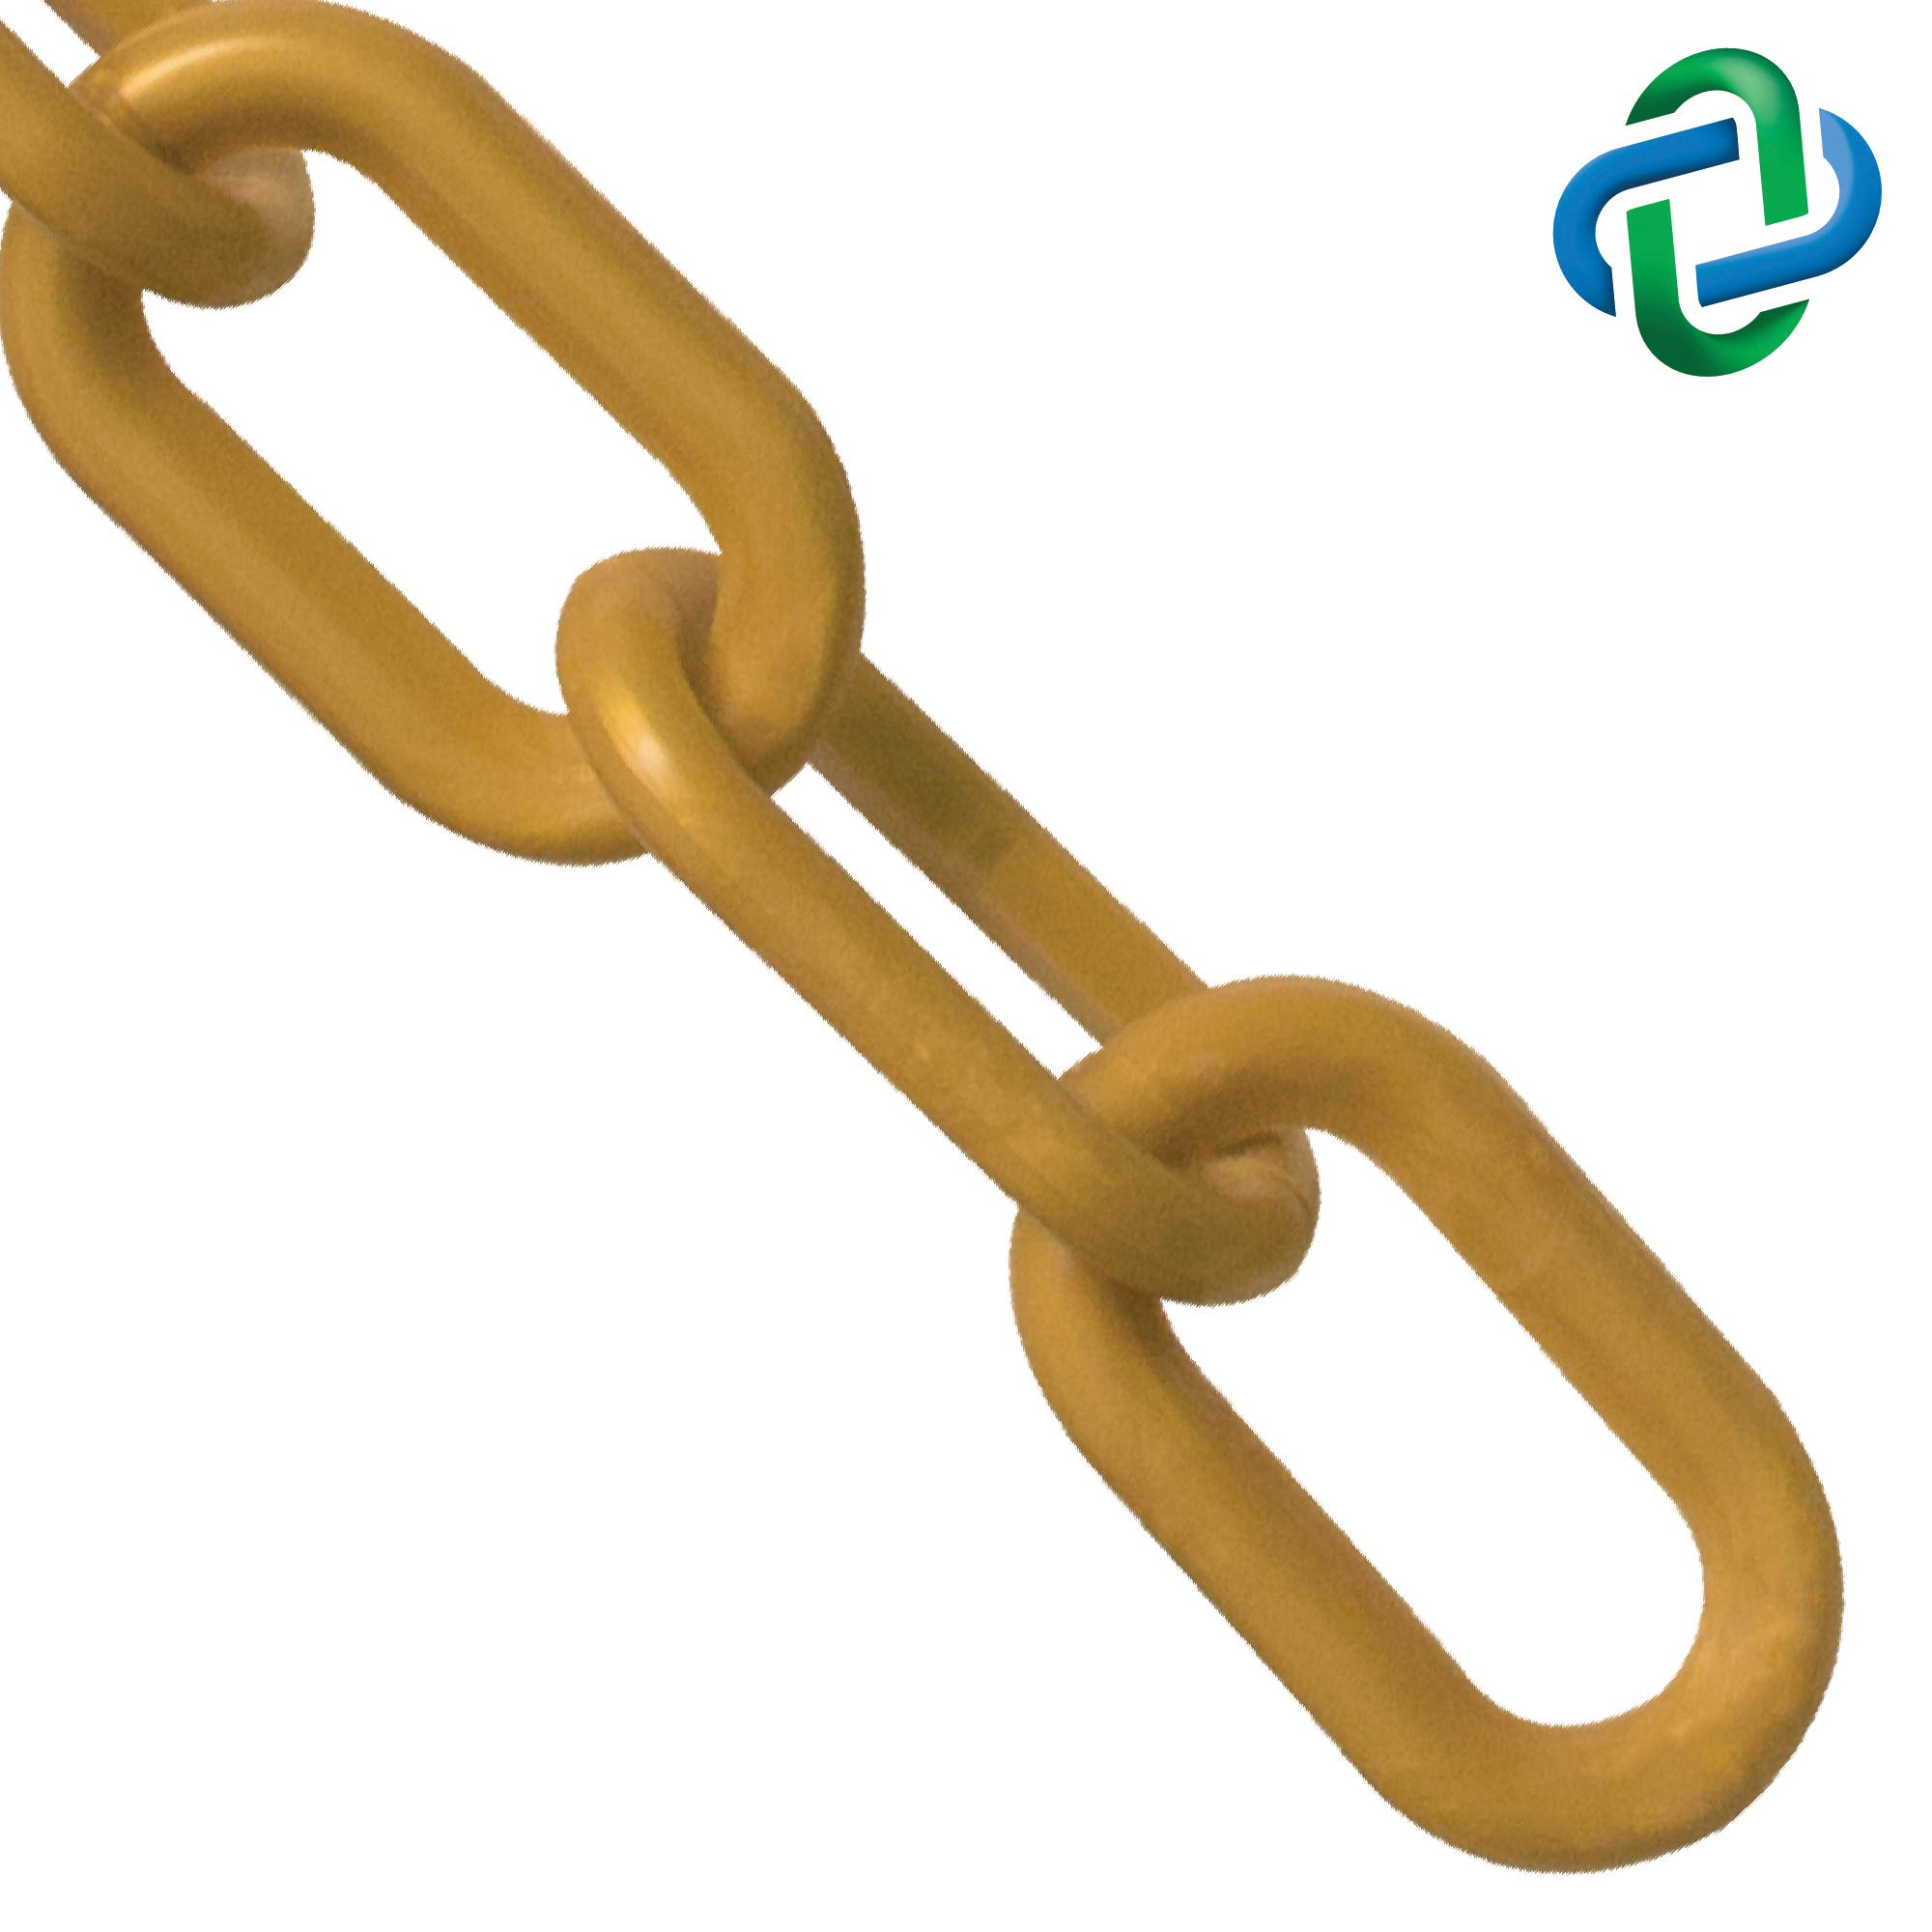 Mr. Chain Plastic Barrier Chain, Gold, 2-Inch Link Diameter, 25-Foot Length (50009-25) by Mr. Chain